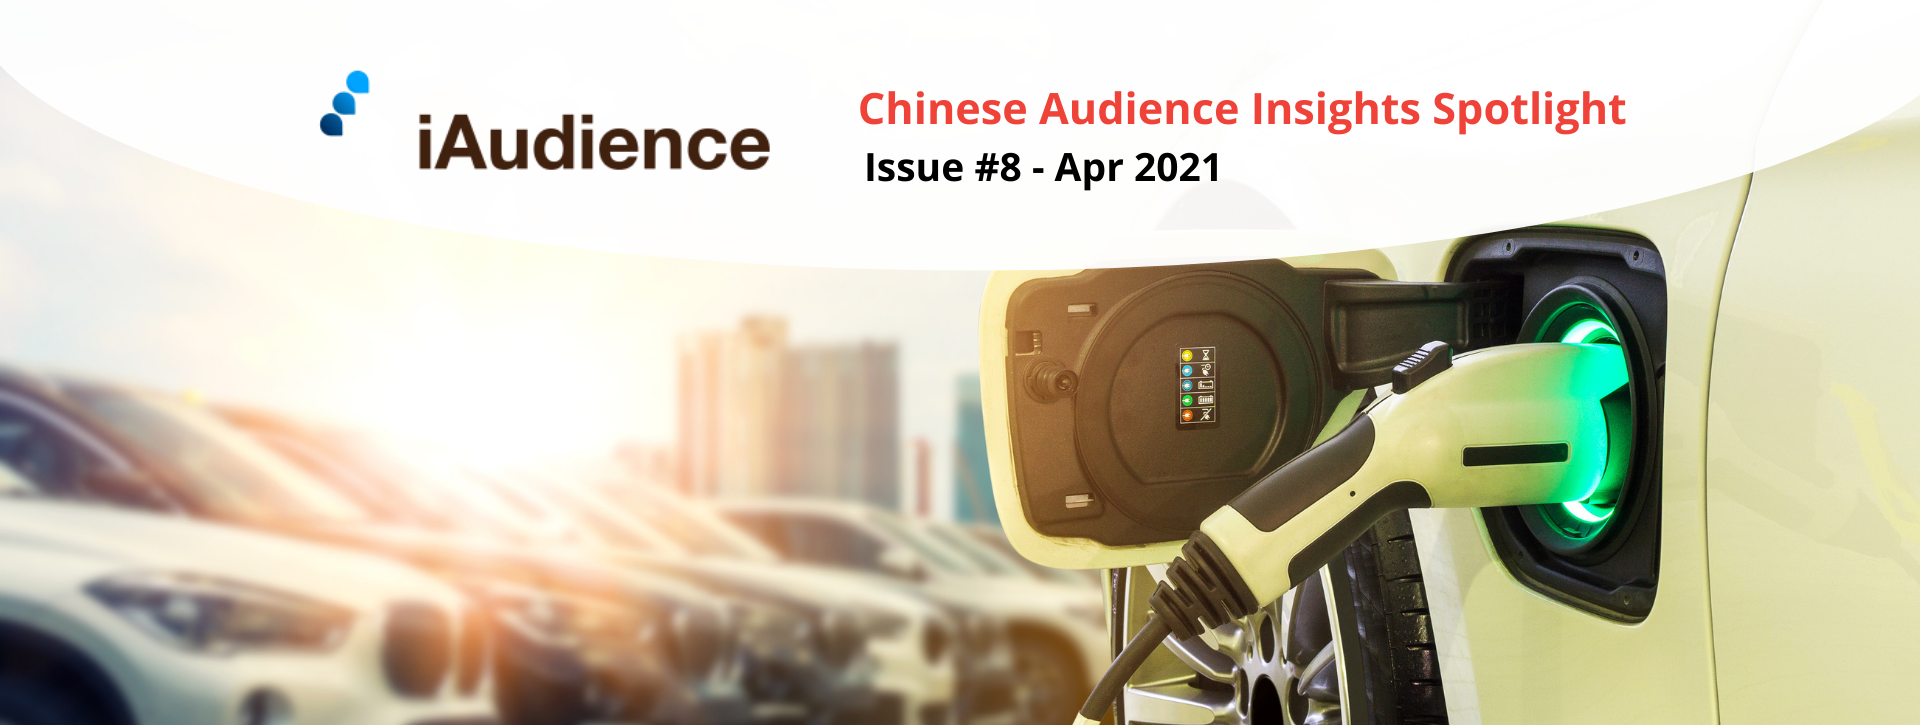 iAudience Insights Spotlight – Issue #8: The Bright Future of China's Vast and Growing Electric Vehicle Market